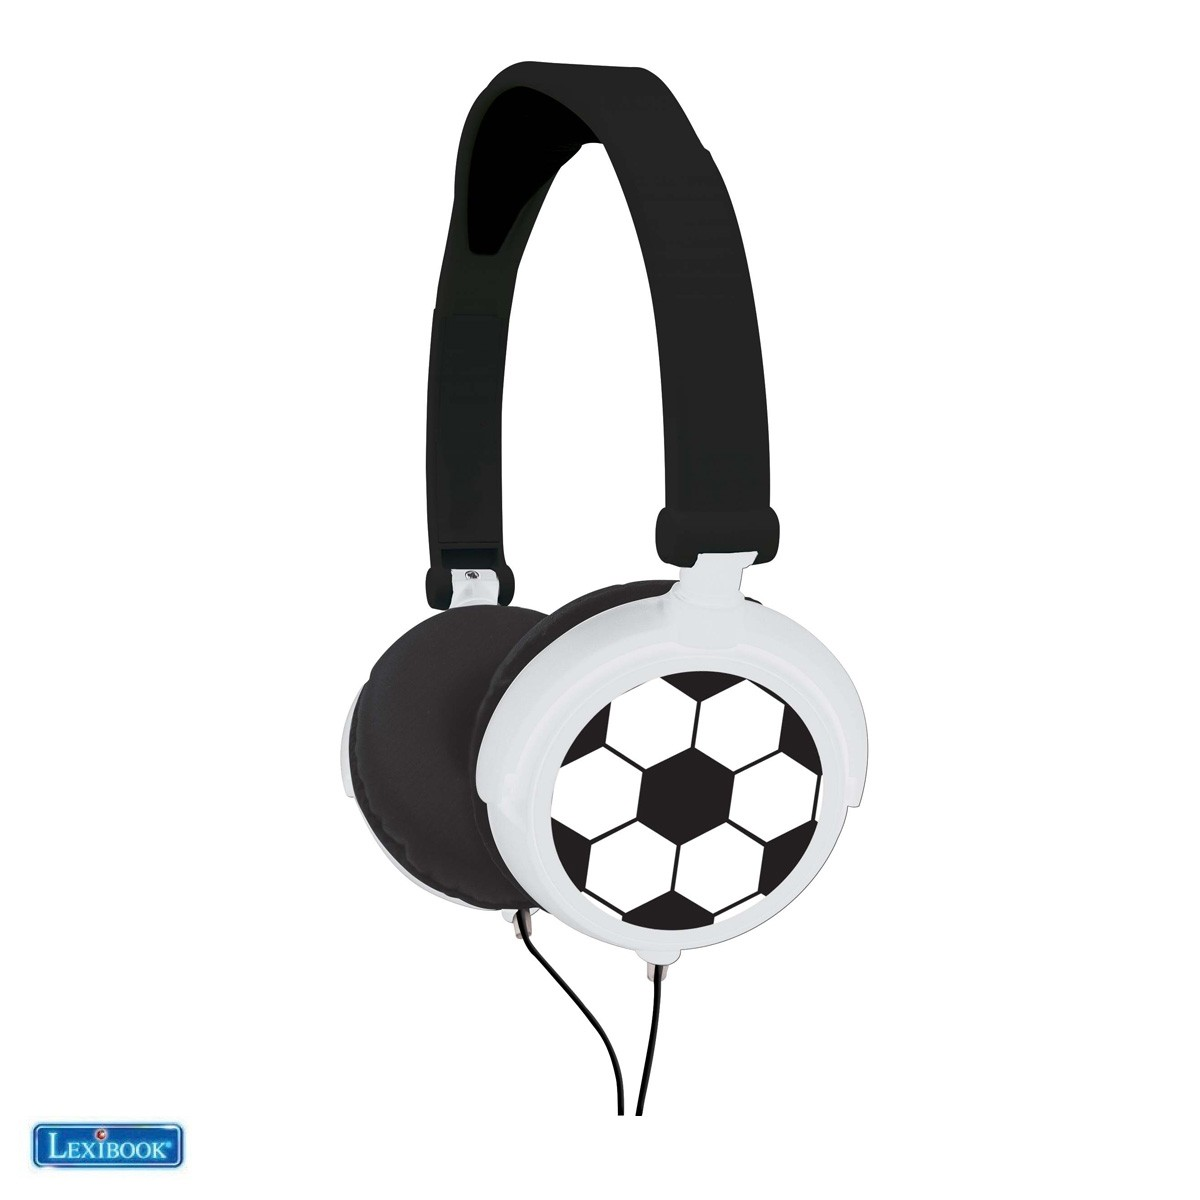 Casque audio stéréo football - Lexibook HP015FO